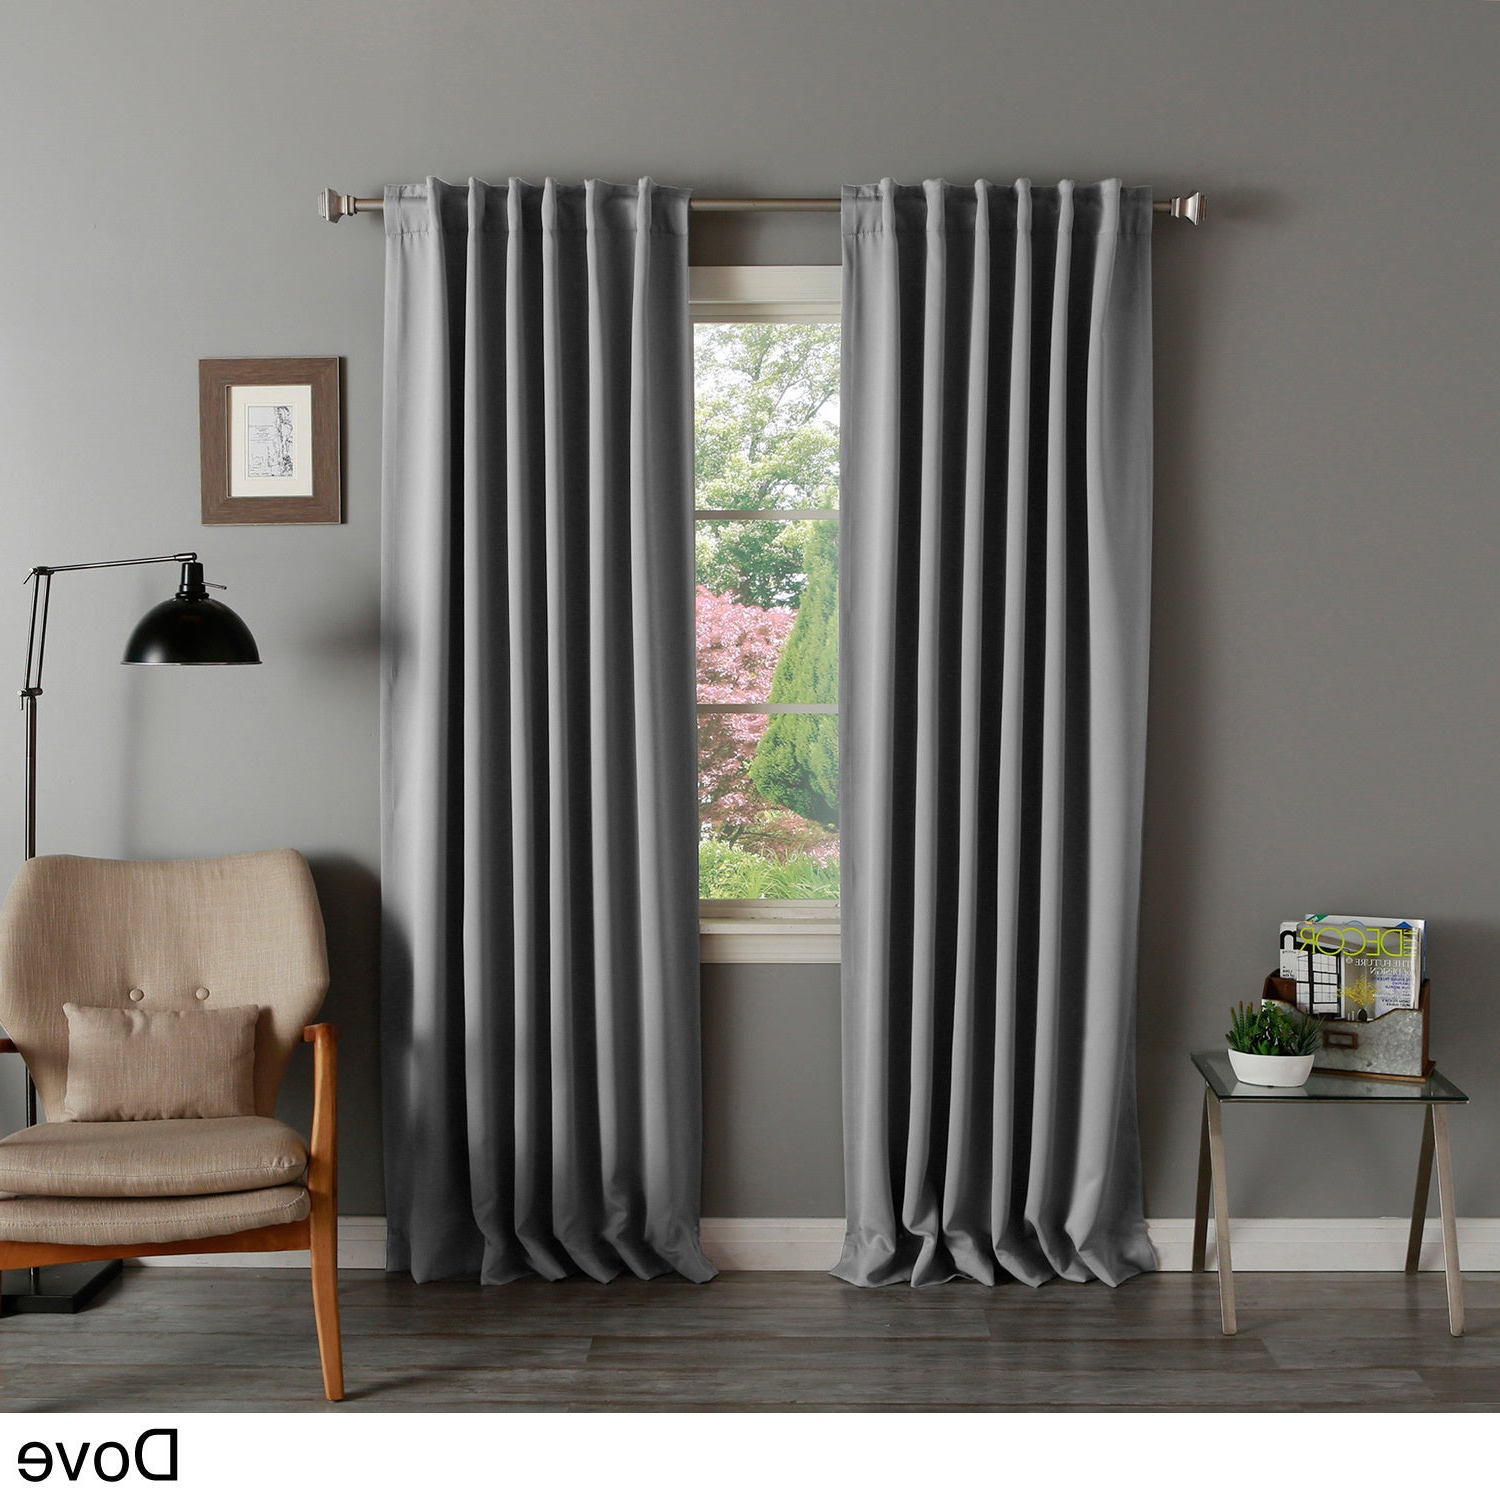 Solid Insulated Thermal Blackout Curtain Panel Pair Intended For Famous Solid Insulated Thermal Blackout Curtain Panel Pairs (View 2 of 20)